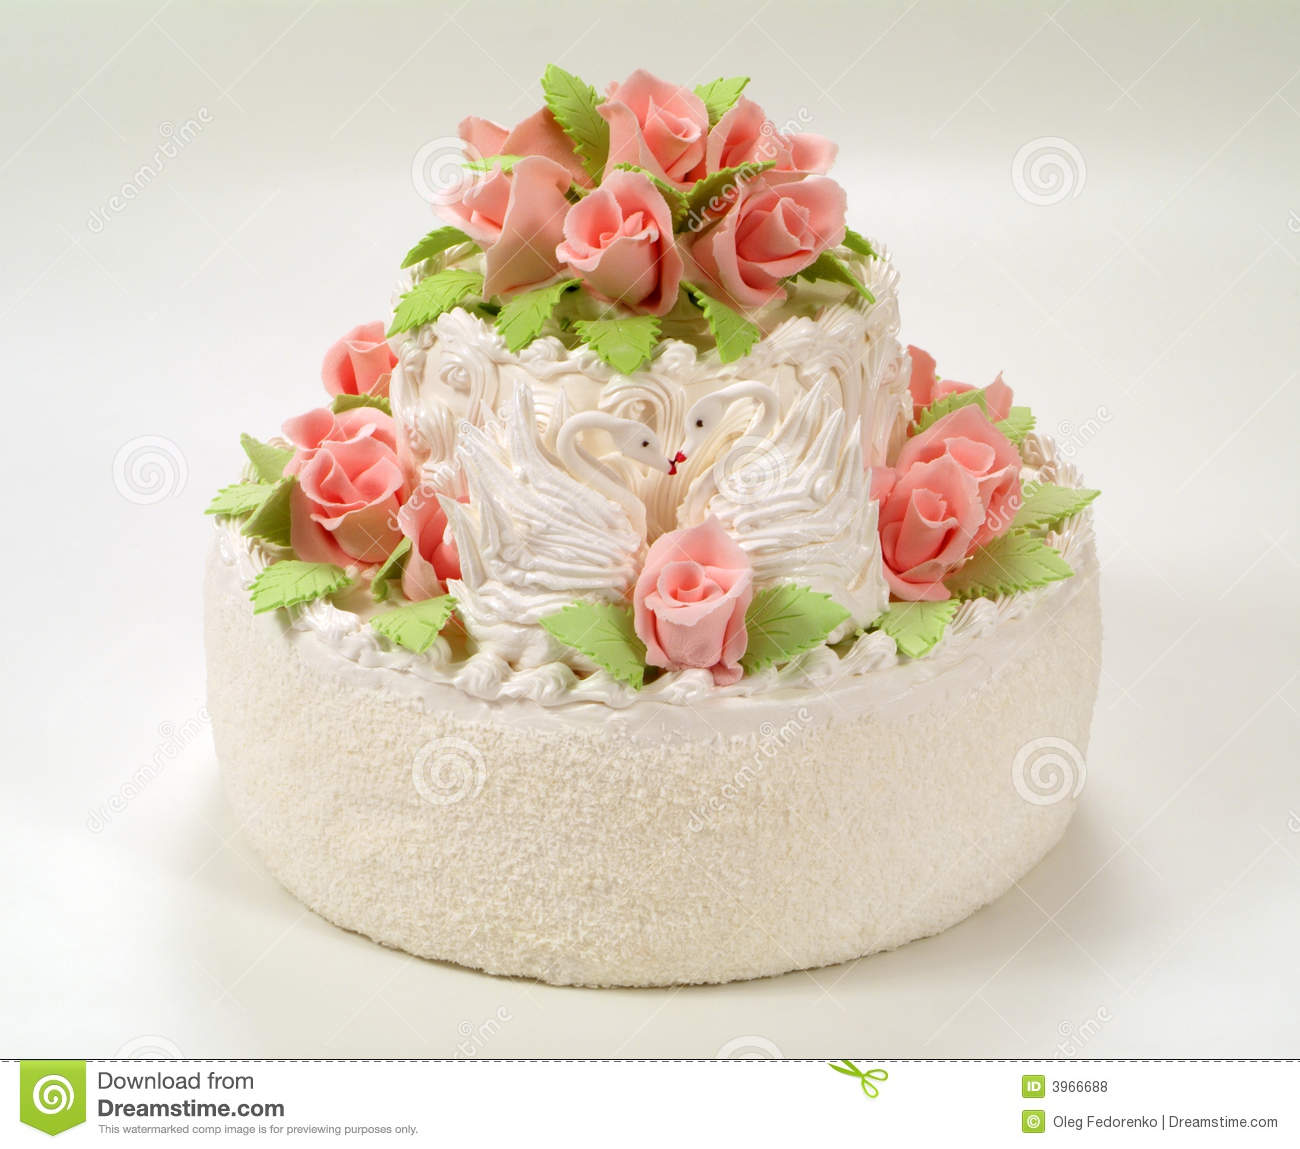 Cake Images Rose : A Cake With Roses. Royalty Free Stock Photos - Image: 3966688